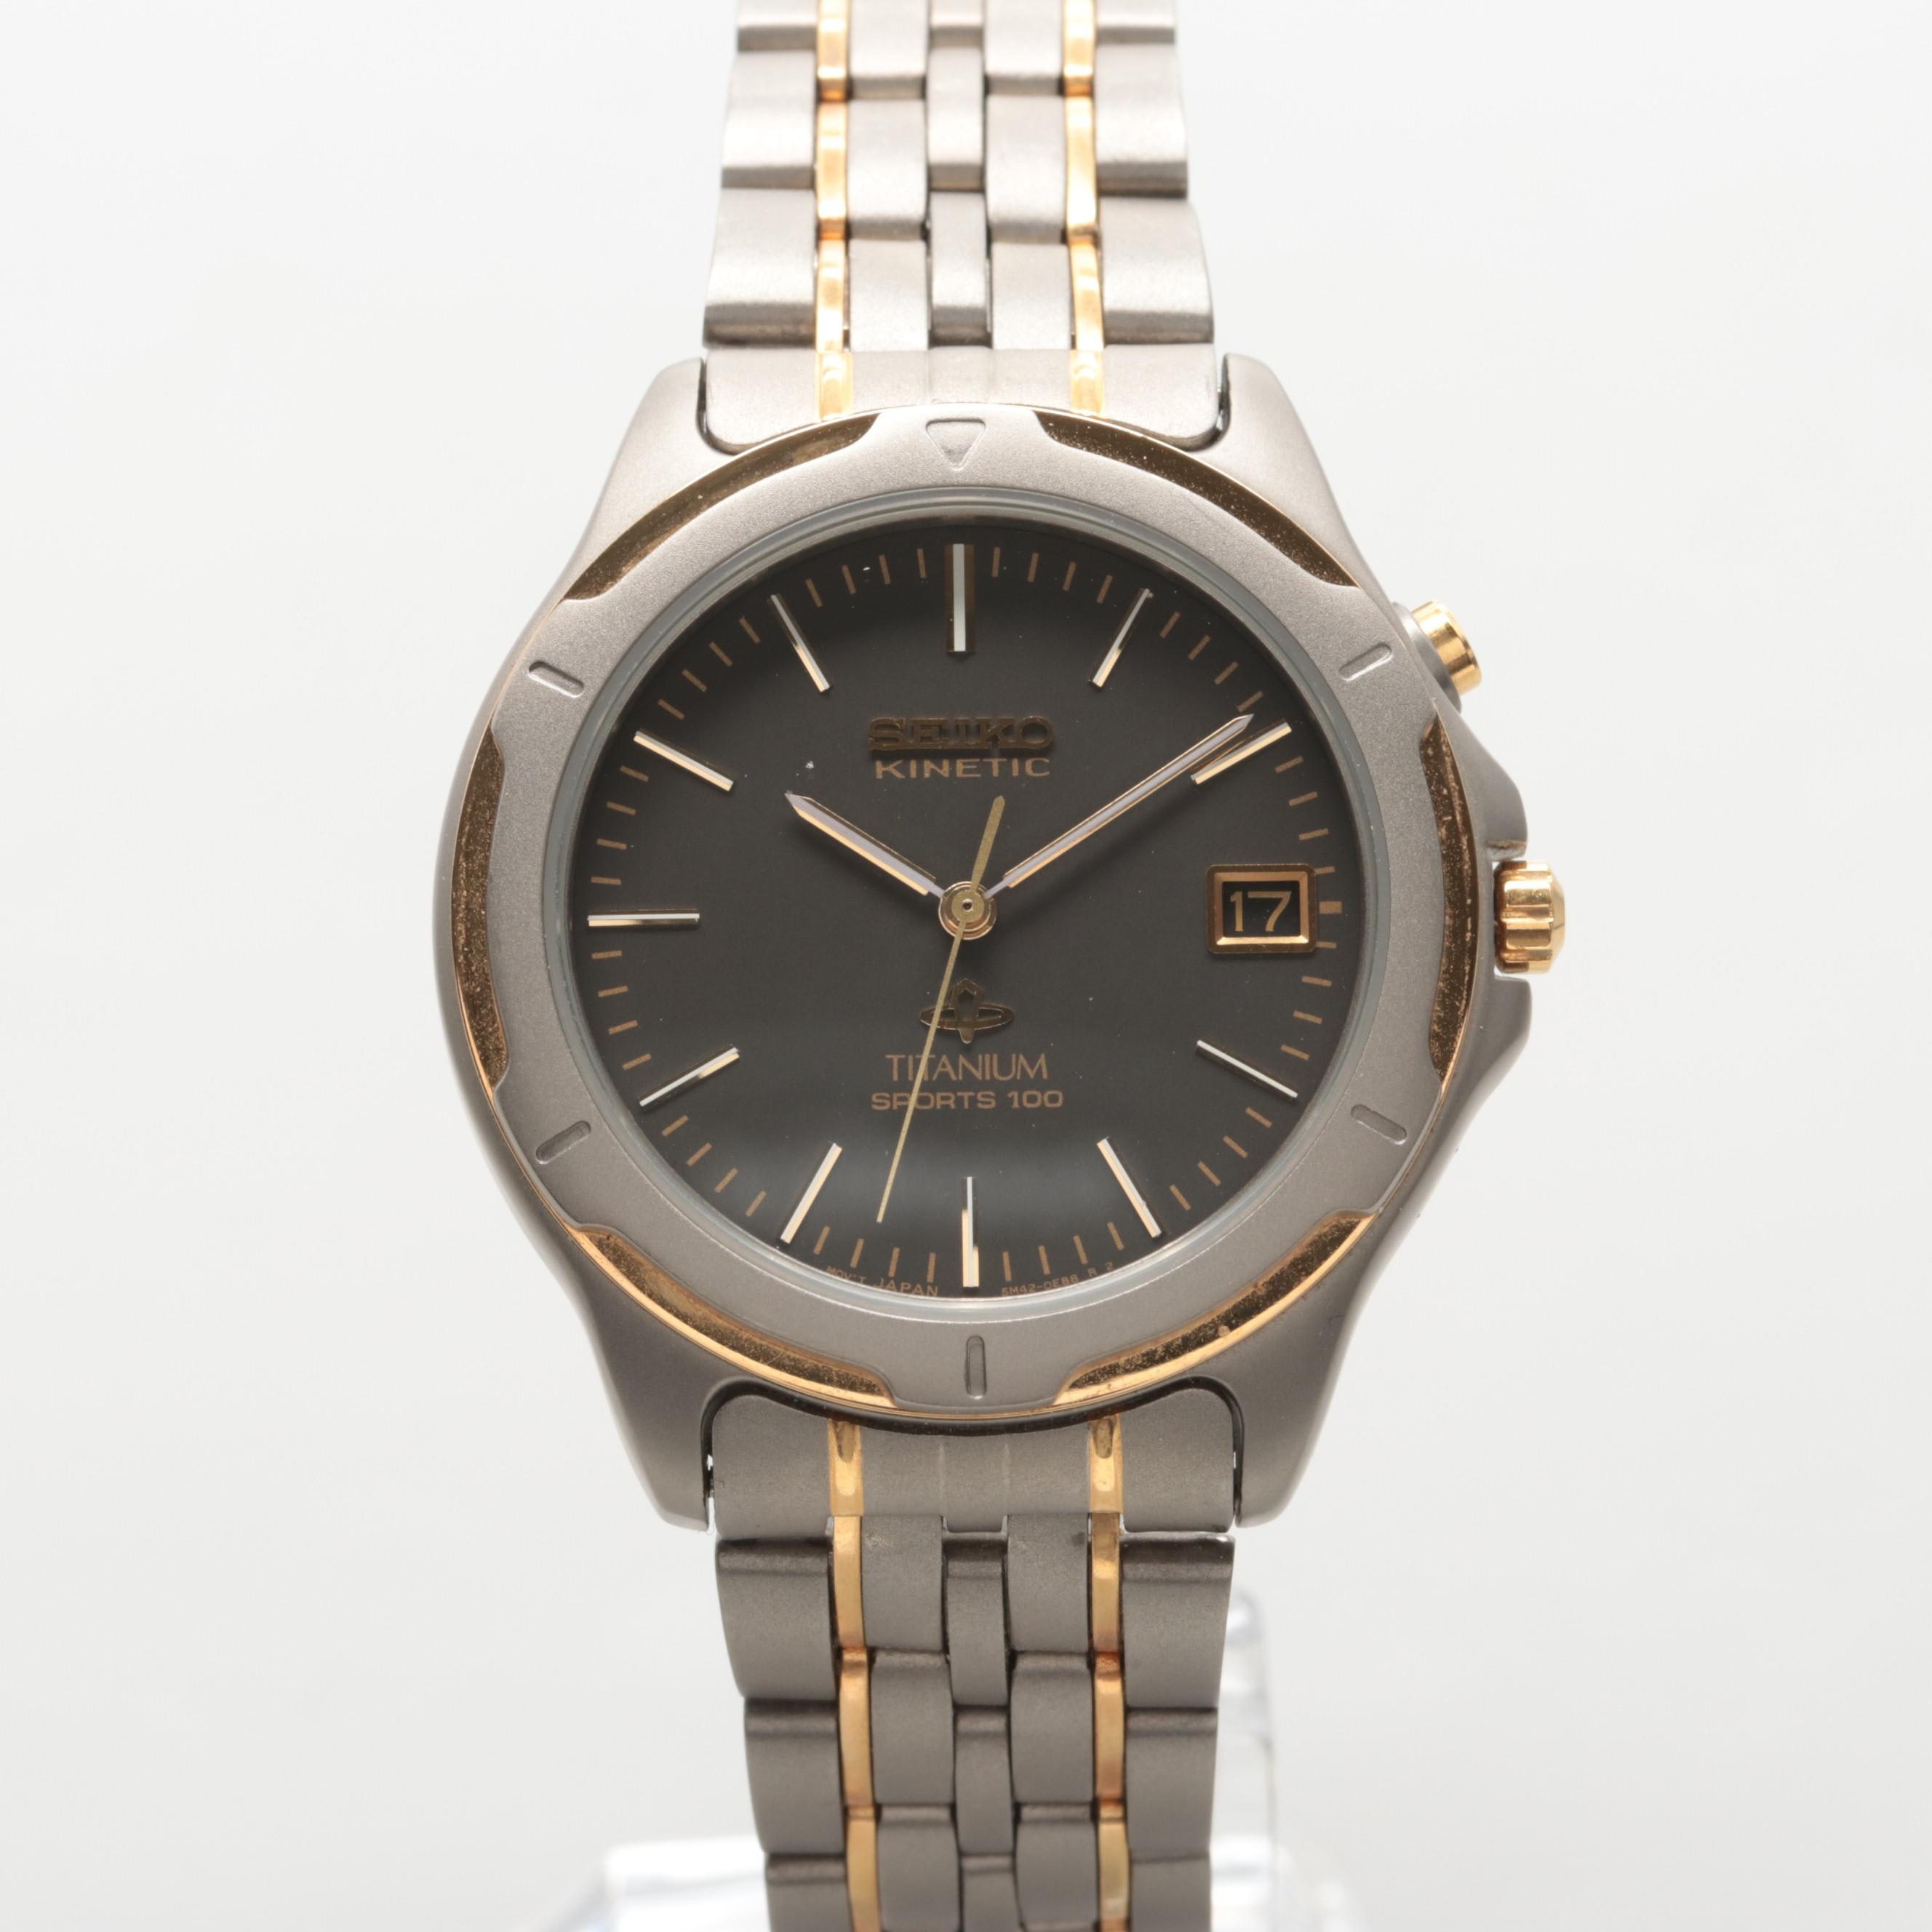 Seiko Two-Tone Kinetic Wristwatch With Date Window